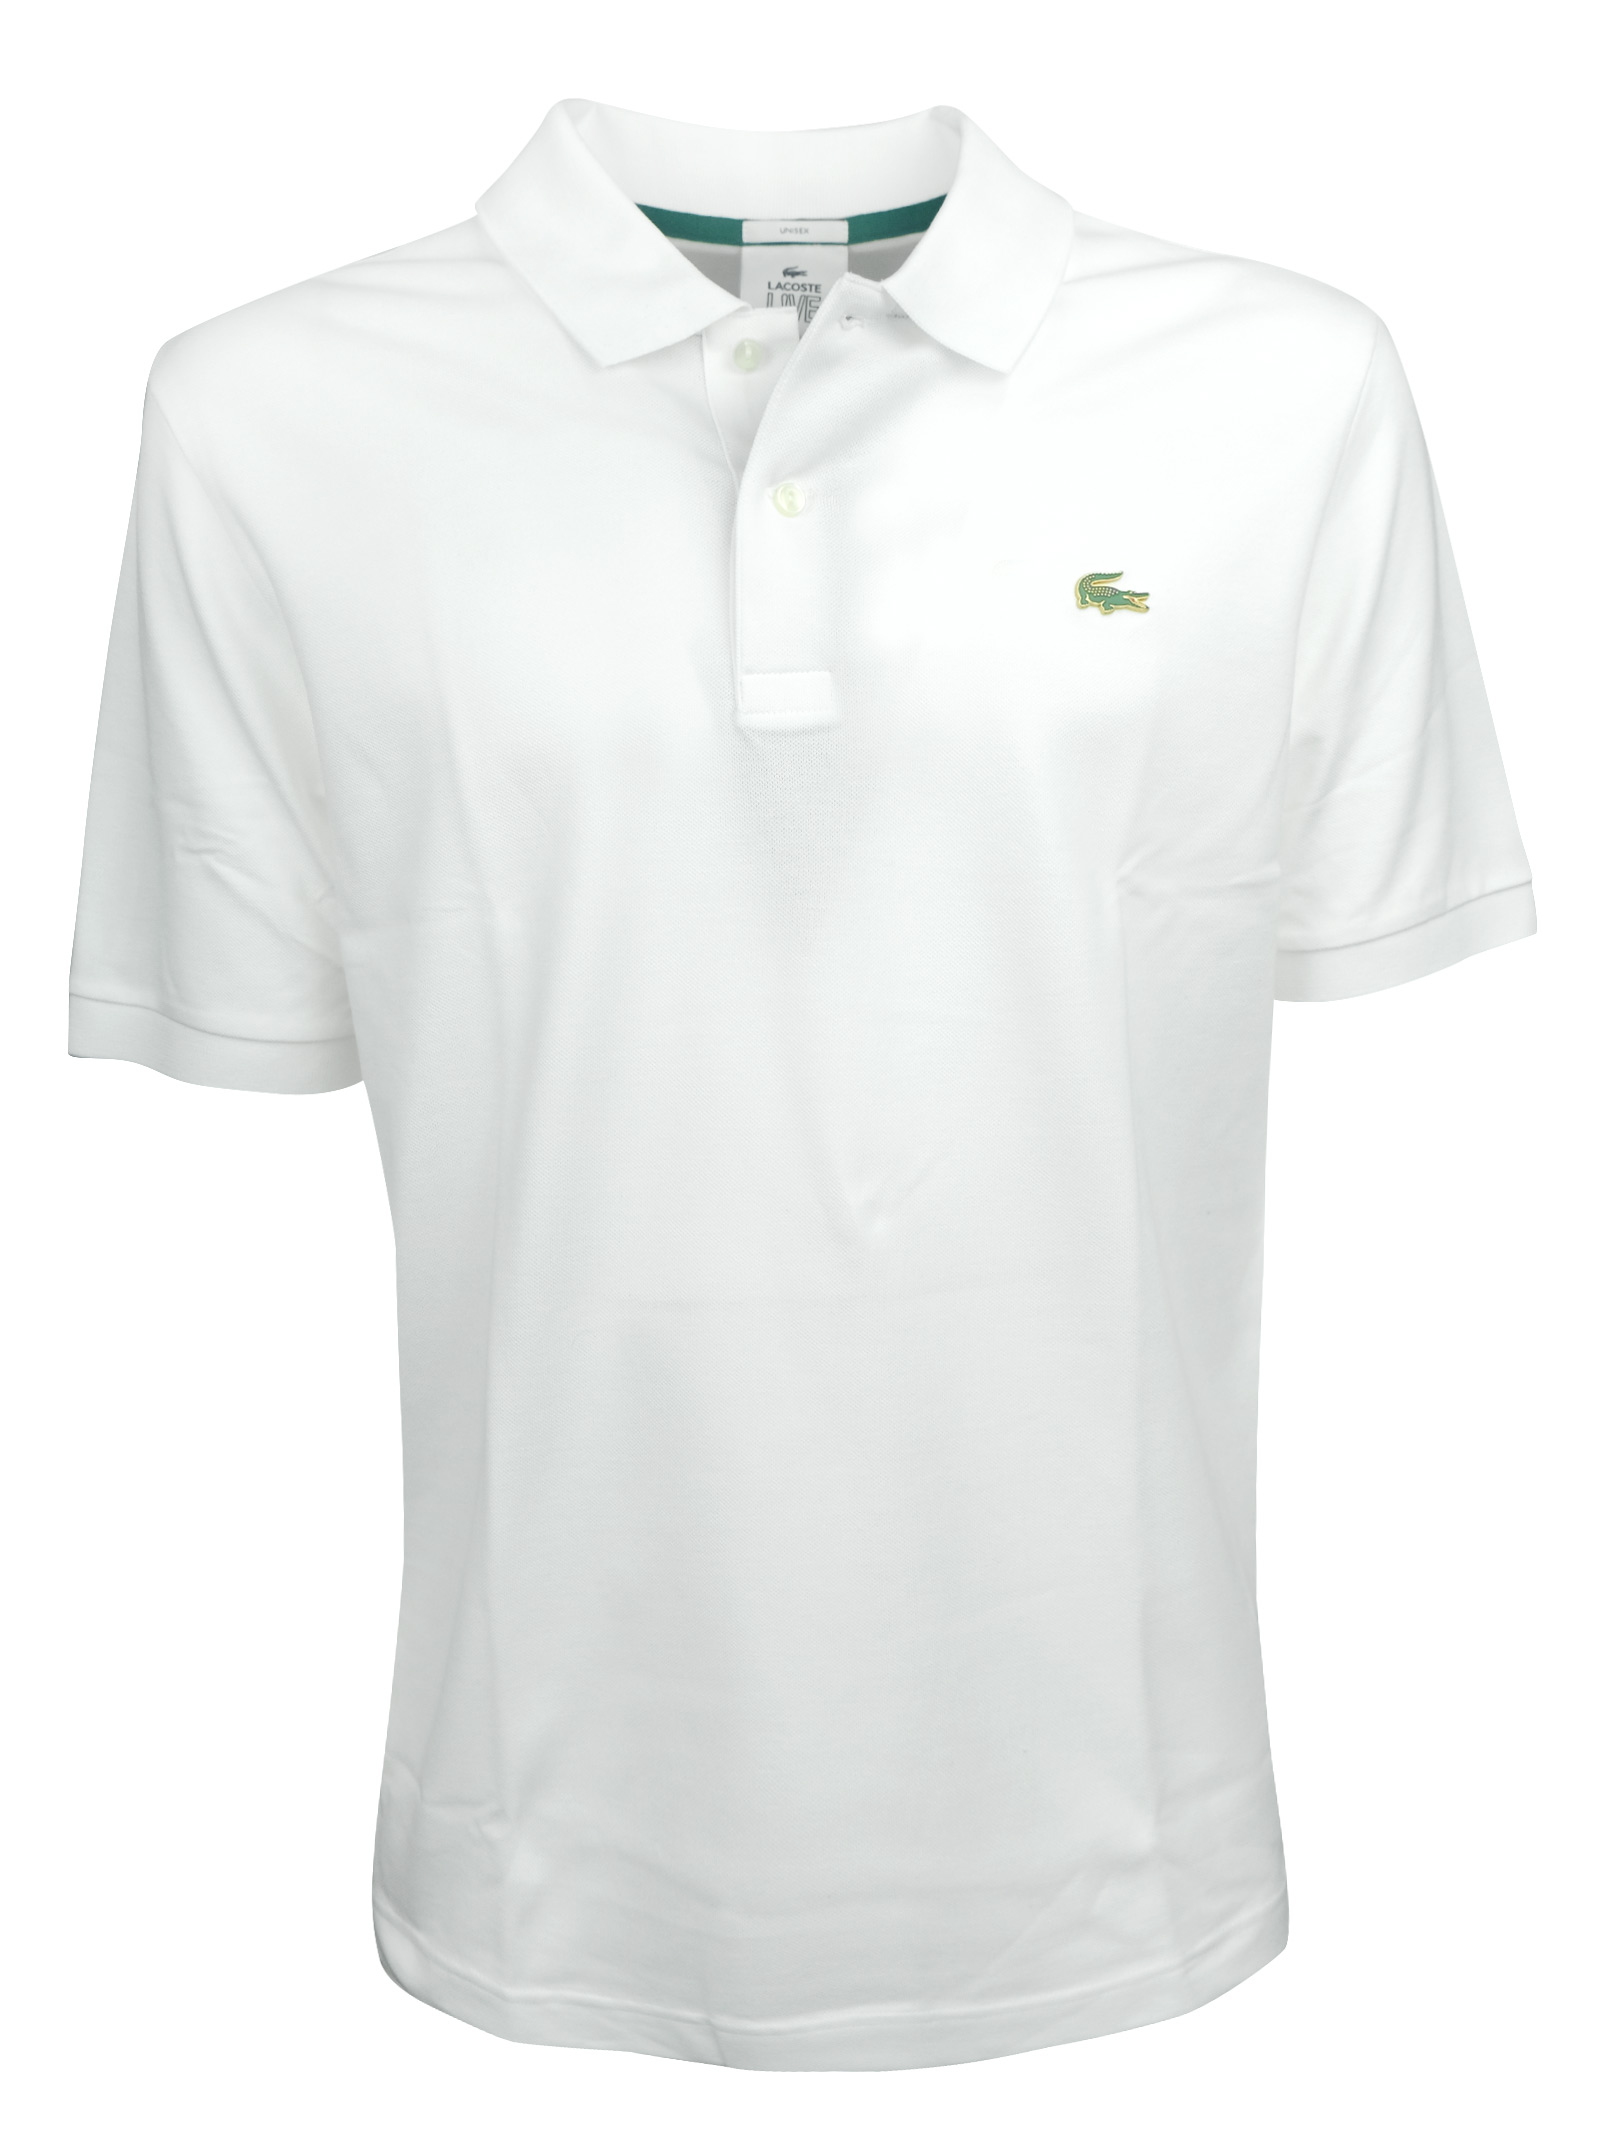 Unisex poloLimited edition LACOSTE   Polos   PH9161001